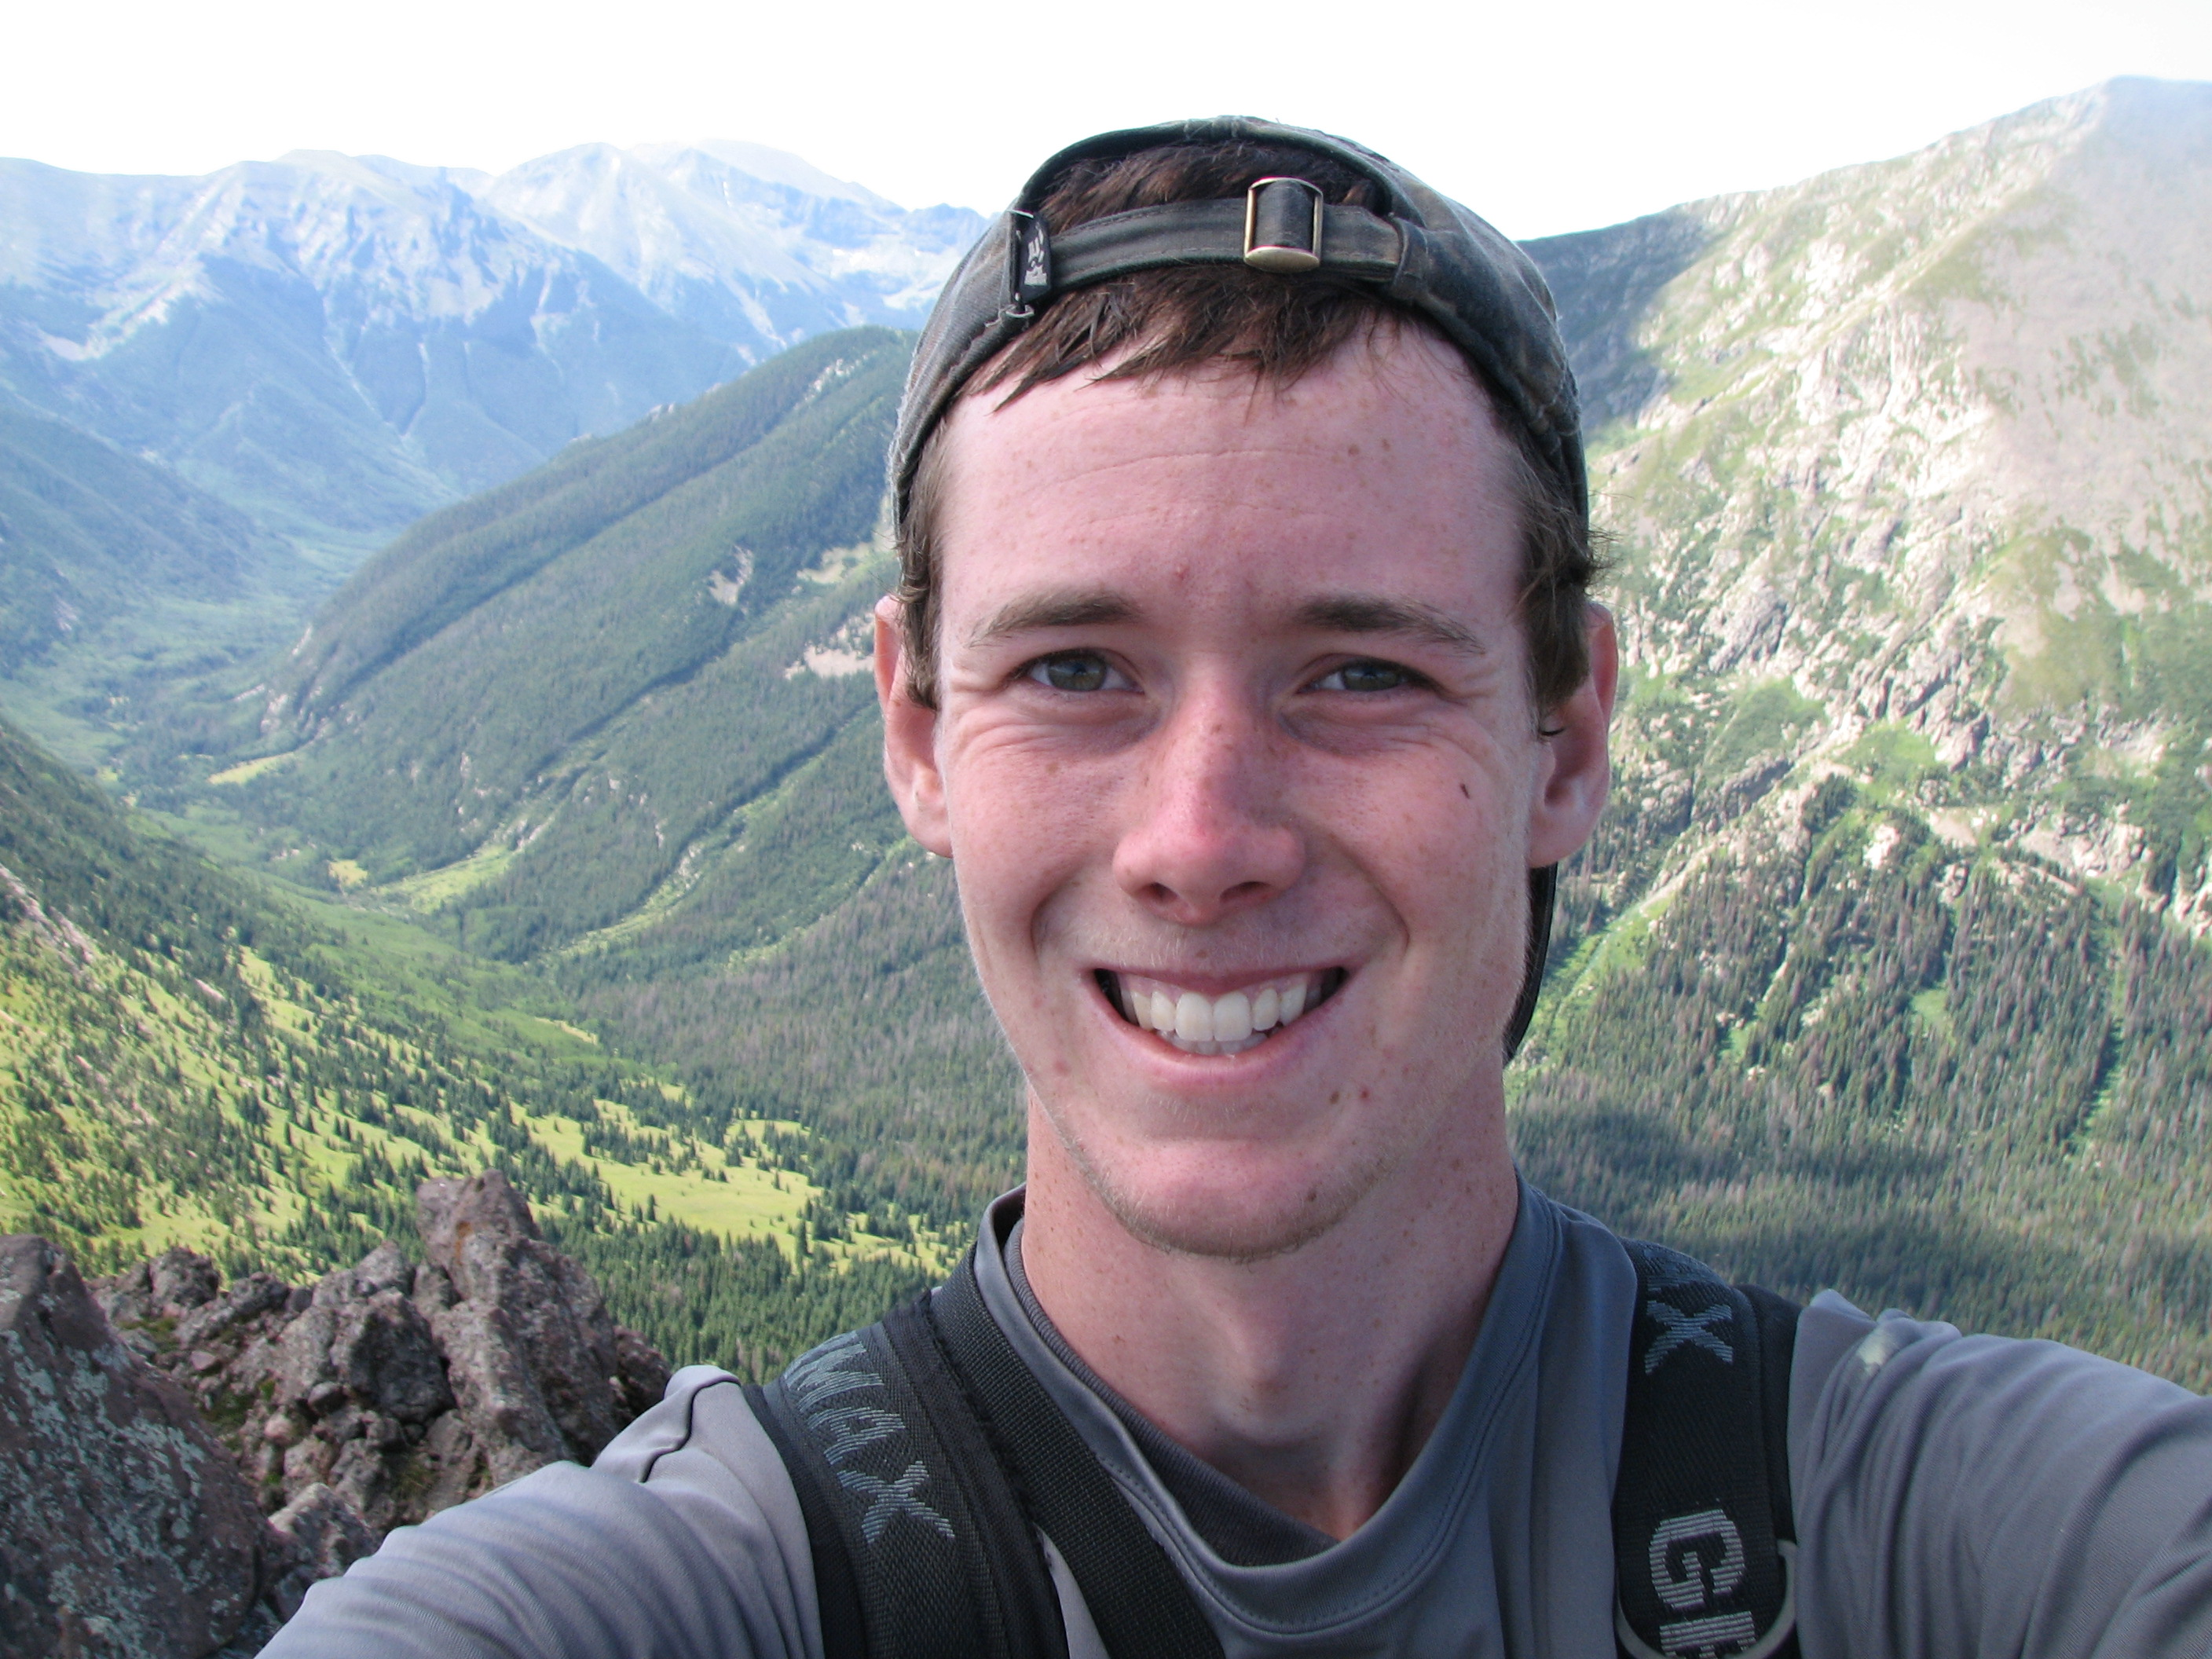 Meet Our Guides: Nate Bazil